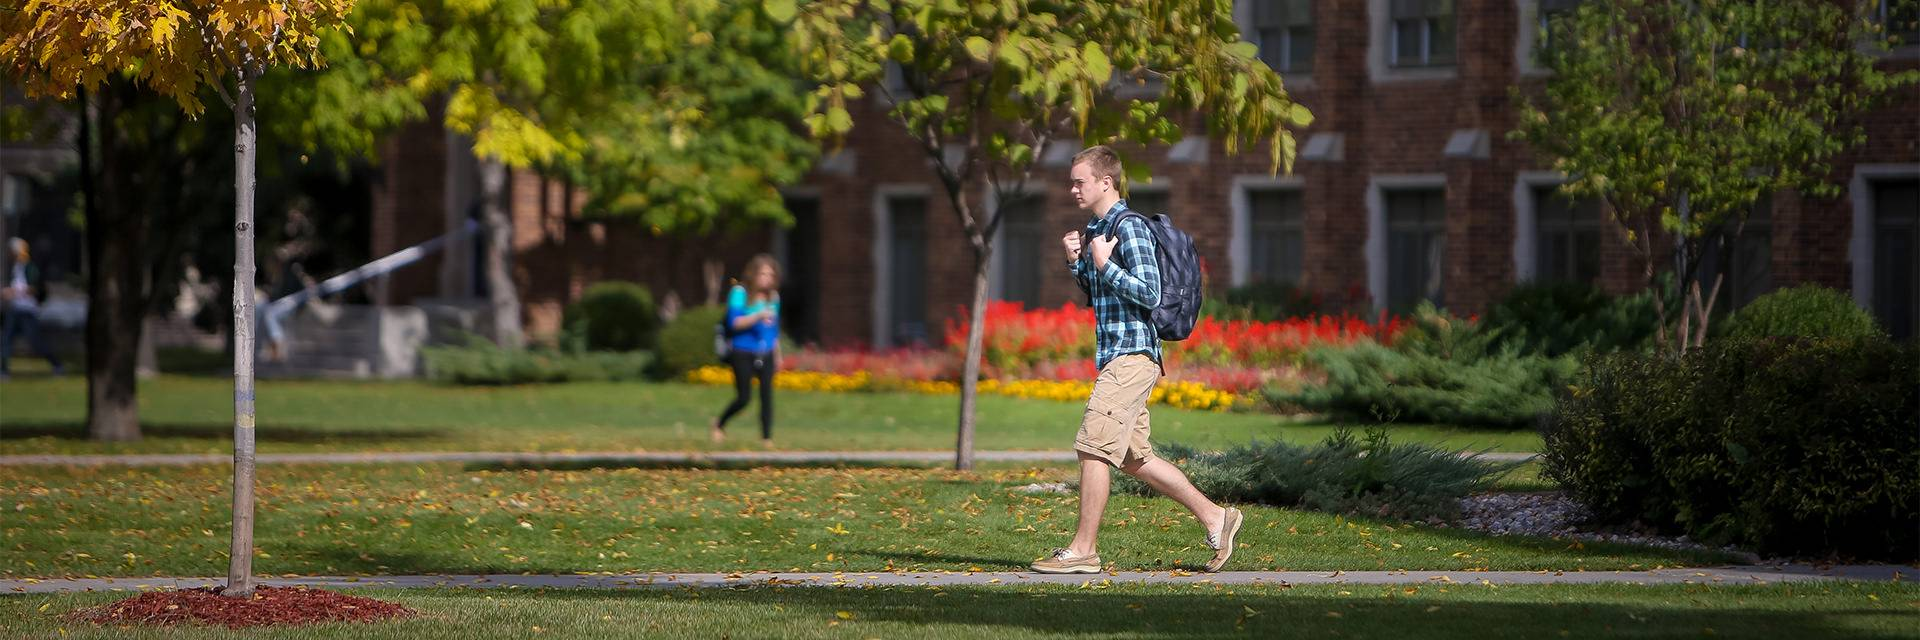 walking across campus during fall